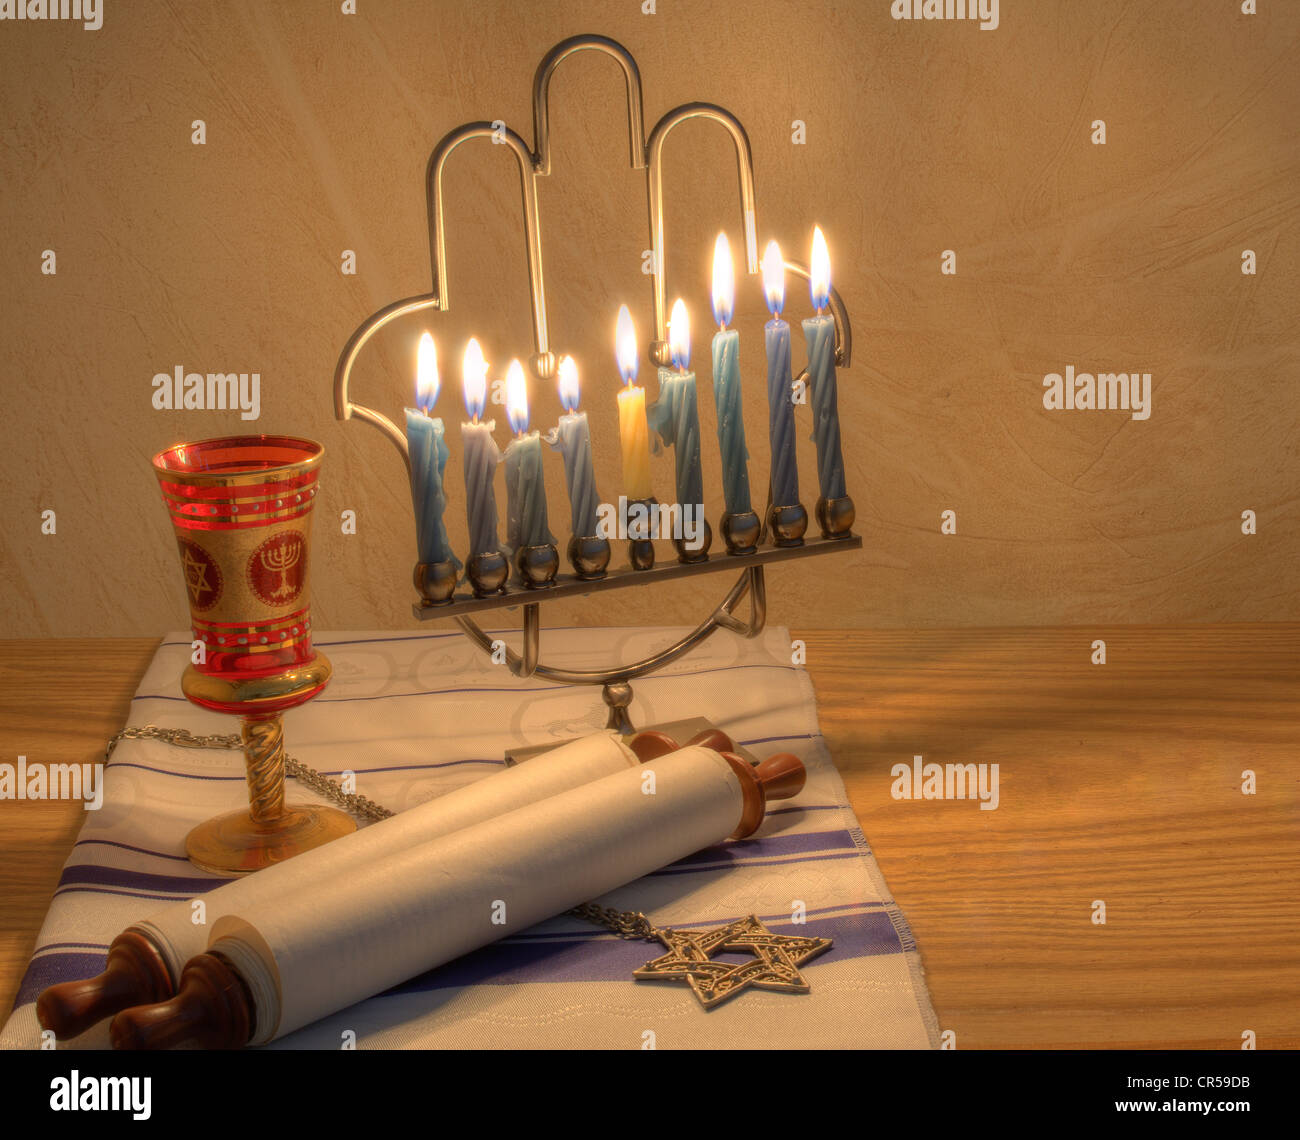 A Judaic Hannukah Menorah, and other objects. - Stock Image